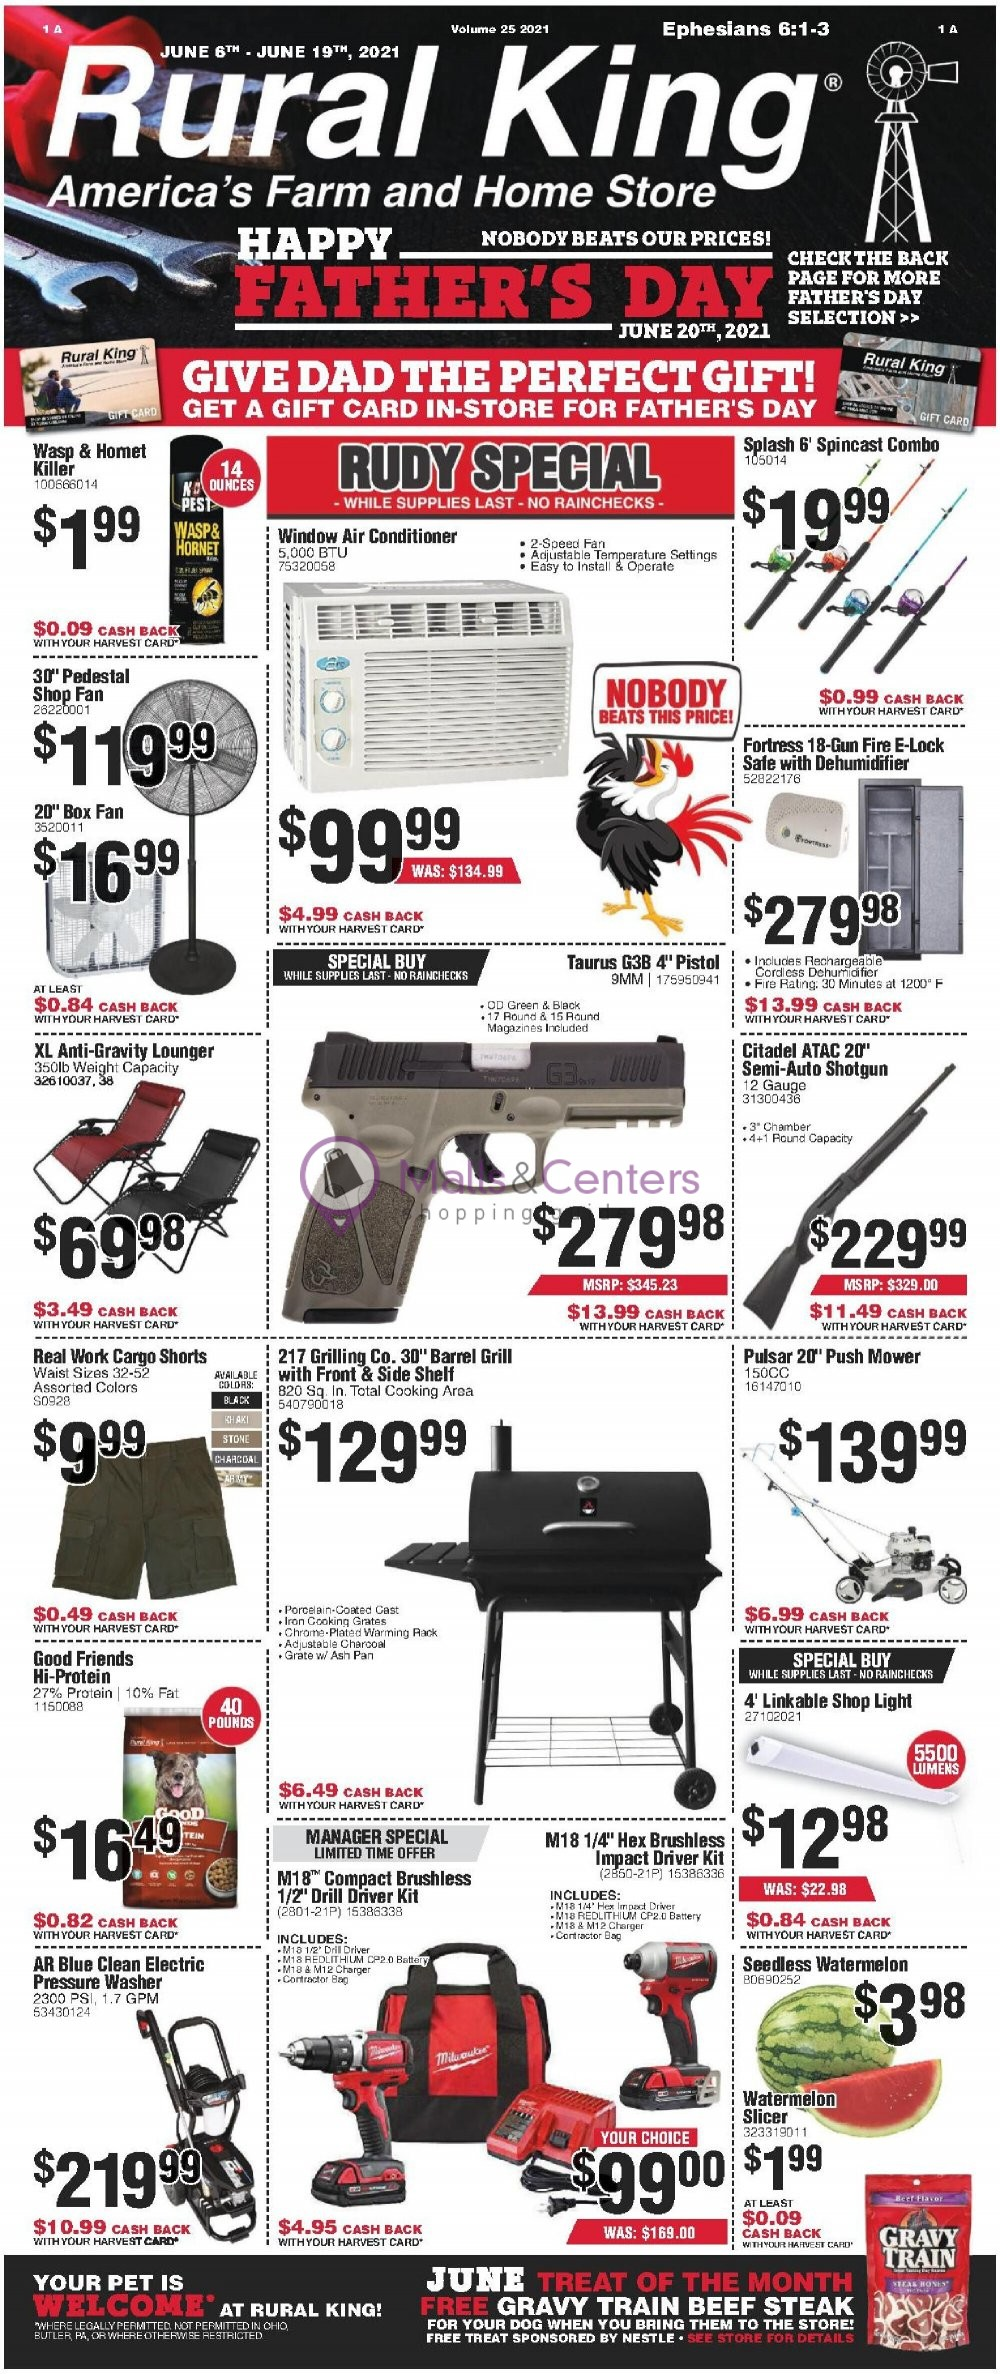 weekly ads Rural King - page 1 - mallscenters.com